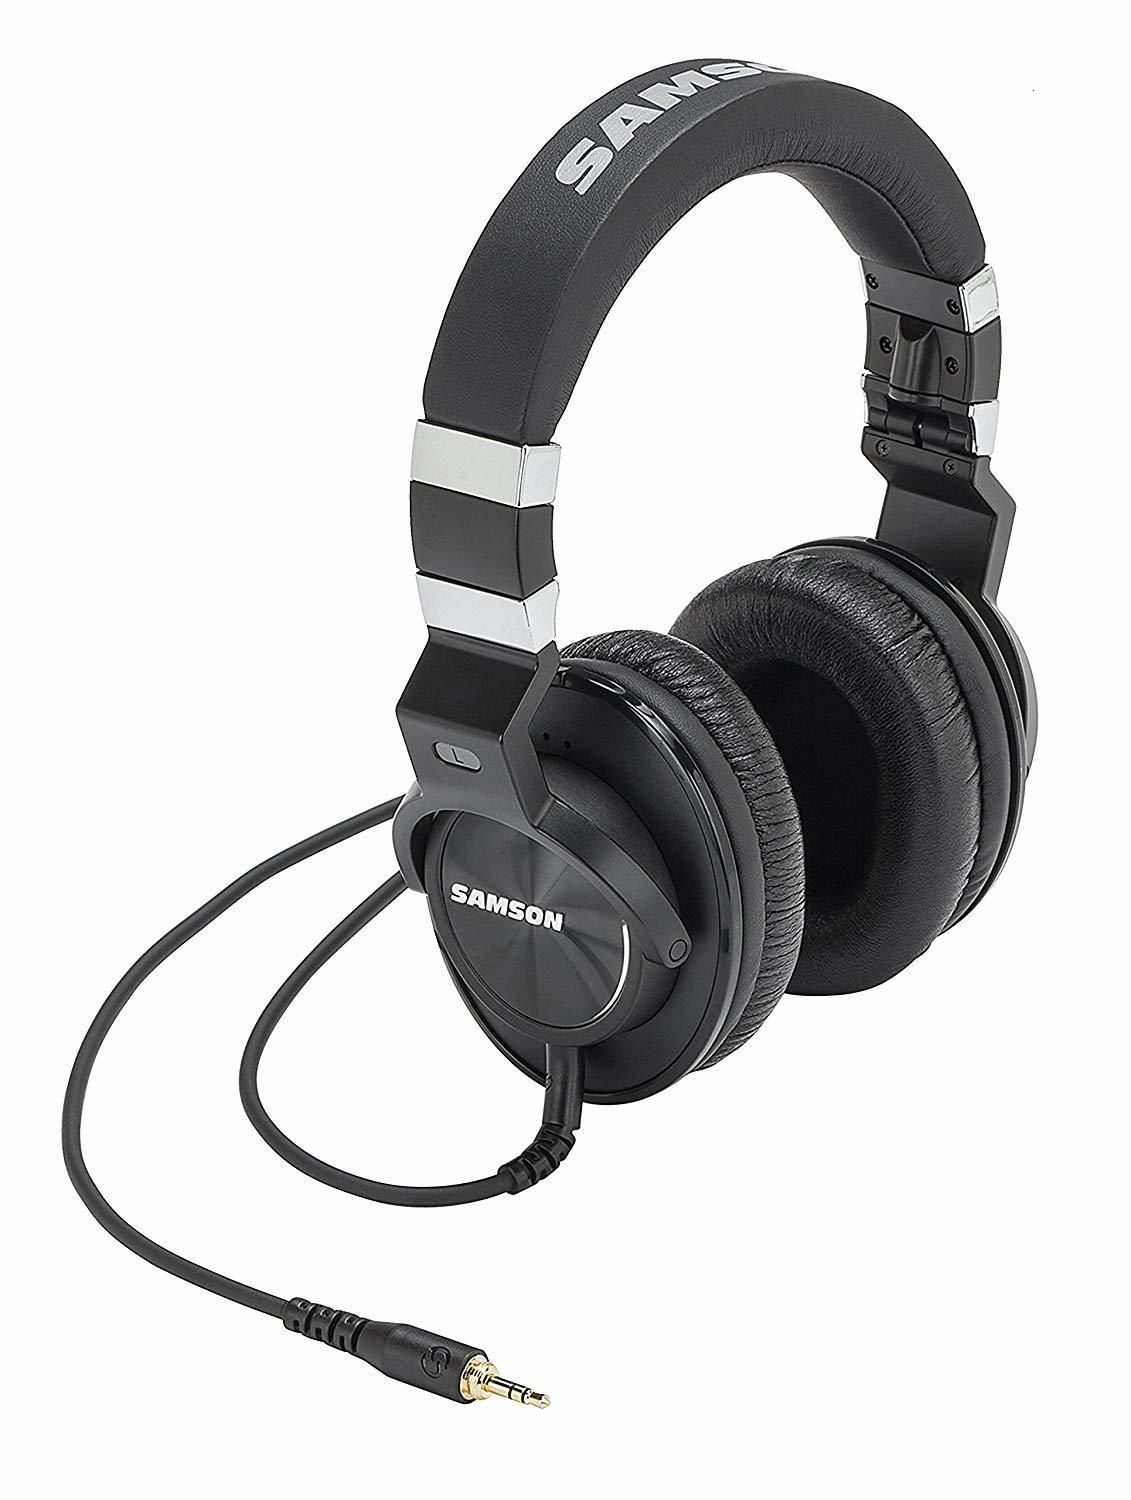 Samson Z25 Closed Back Comfort Wear Earphone Over-ear Studio Monitor Noise Isolating Headphones For Musicians & Music Lovers image